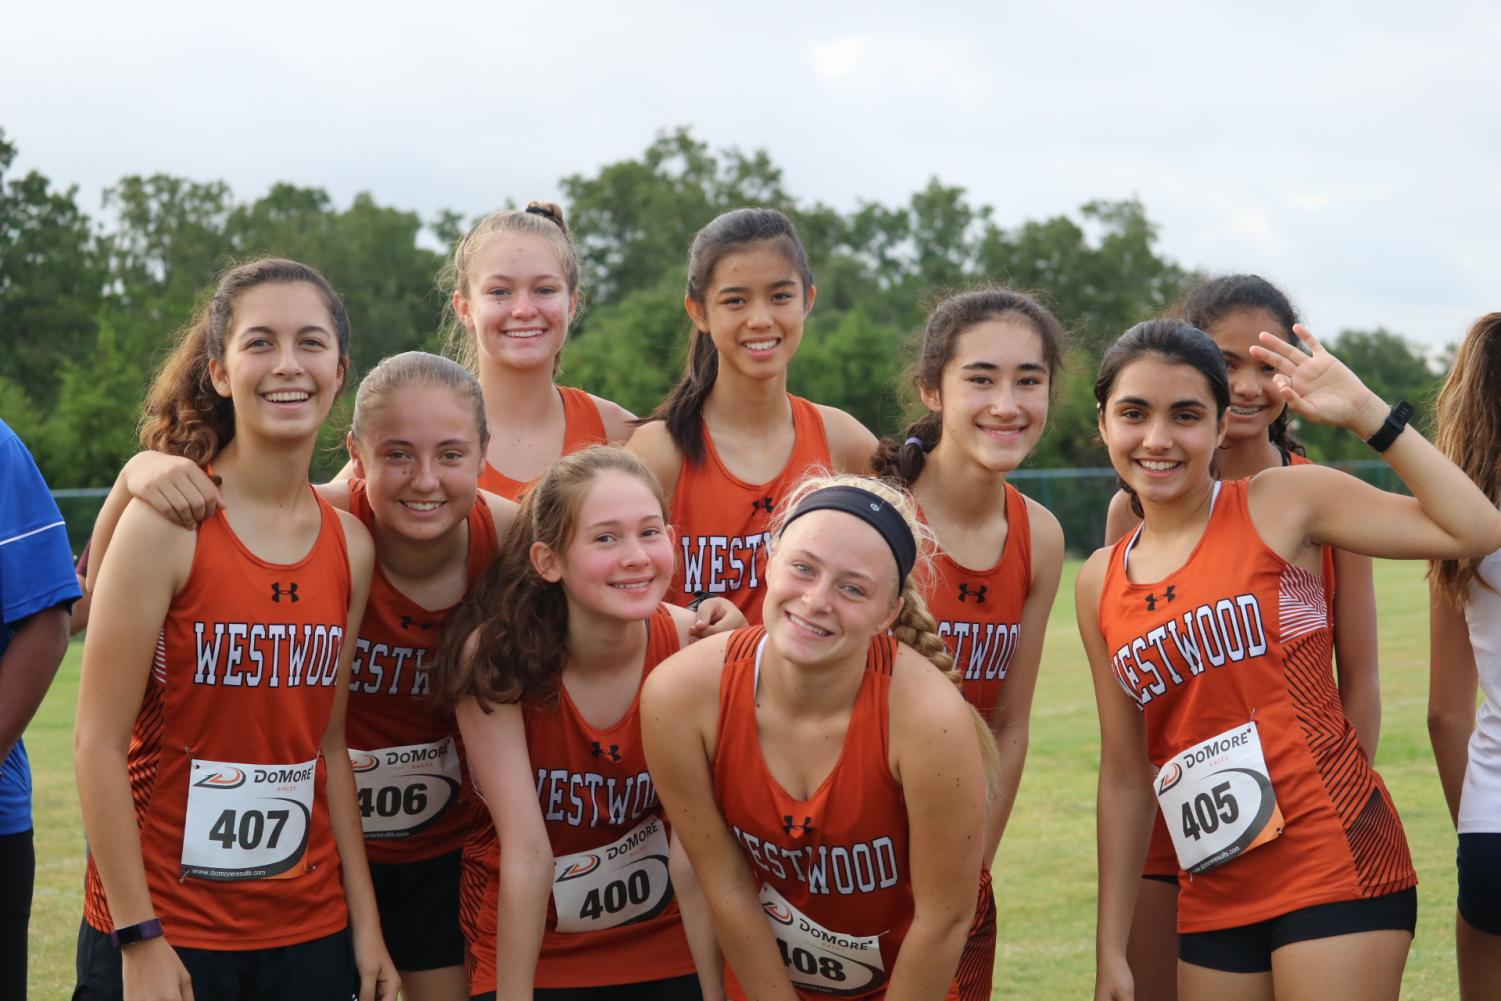 The+varsity+girls+smile+for+a+picture+before+their+race.